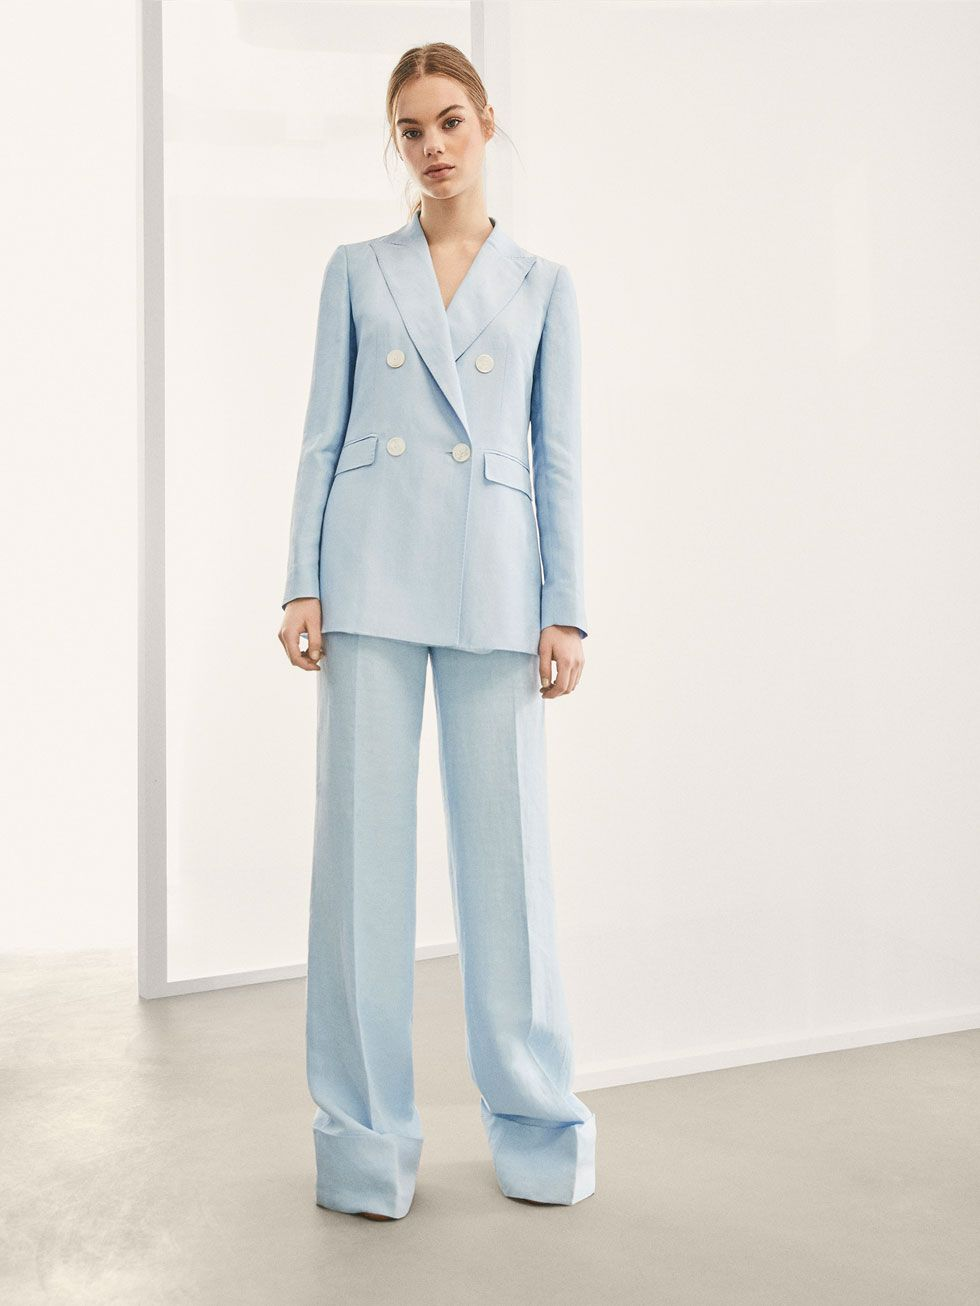 cc793e9ee0f LIMITED EDITION DOUBLE BREASTED LINEN SUIT BLAZER - Women - Massimo Dutti